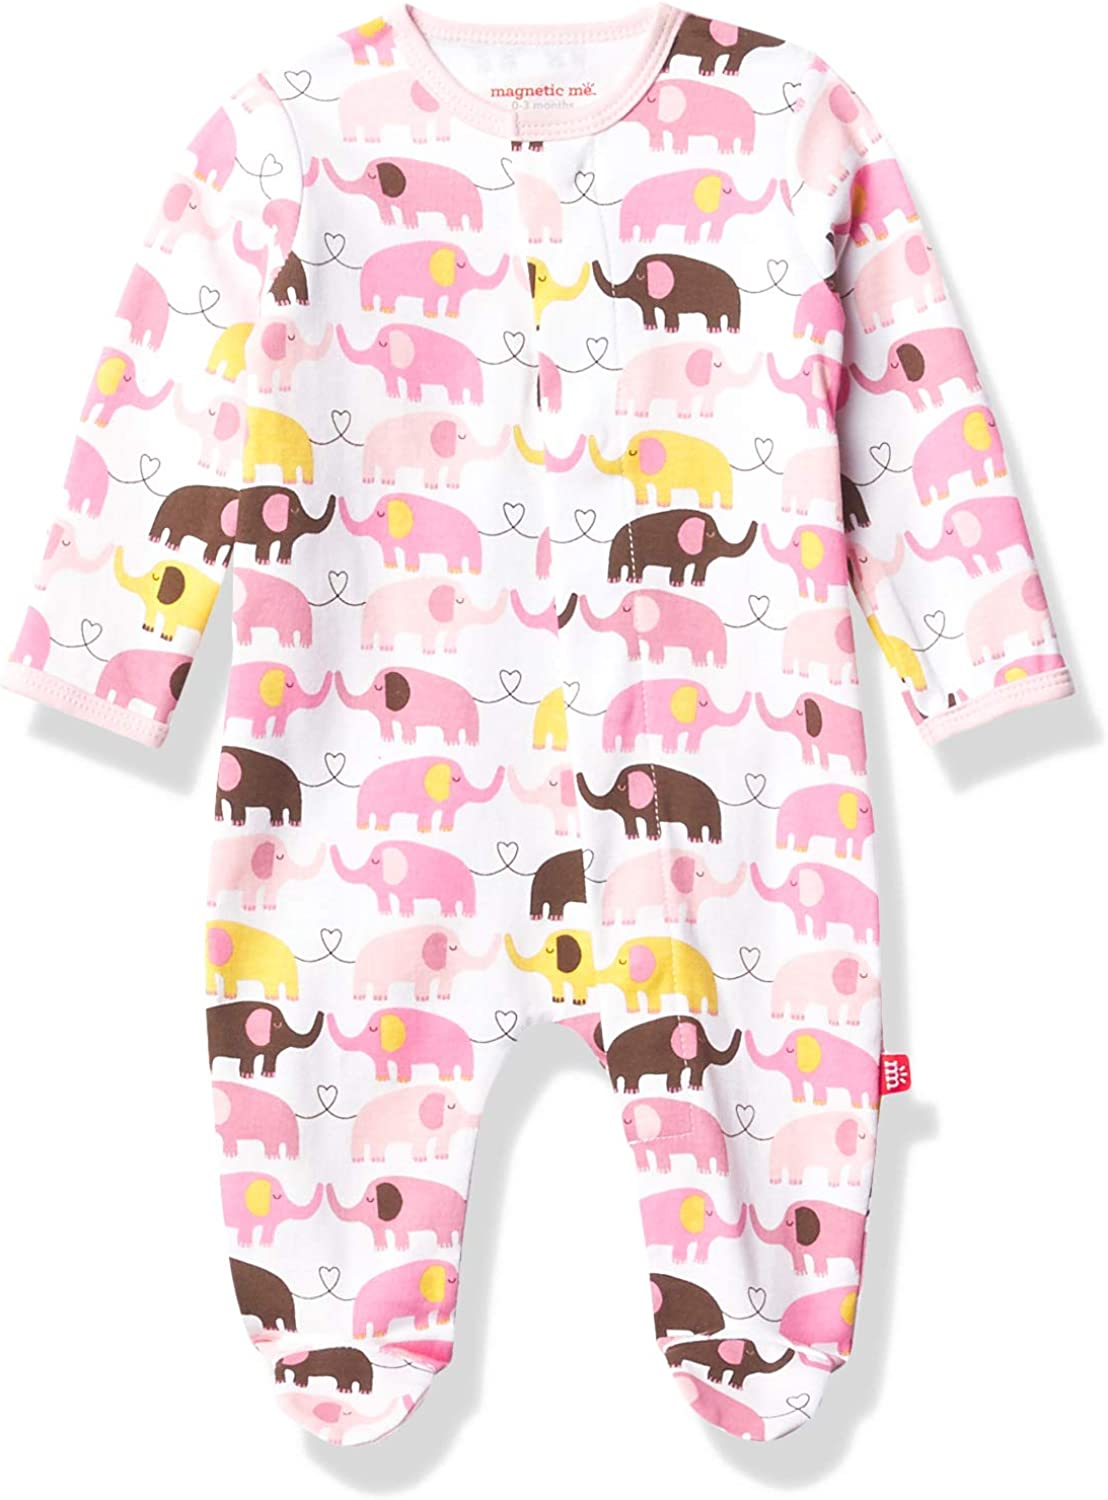 Magnificent Baby Year-end gift Girls Magnetic Omaha Mall Cotton Pajamas Fastener Footie